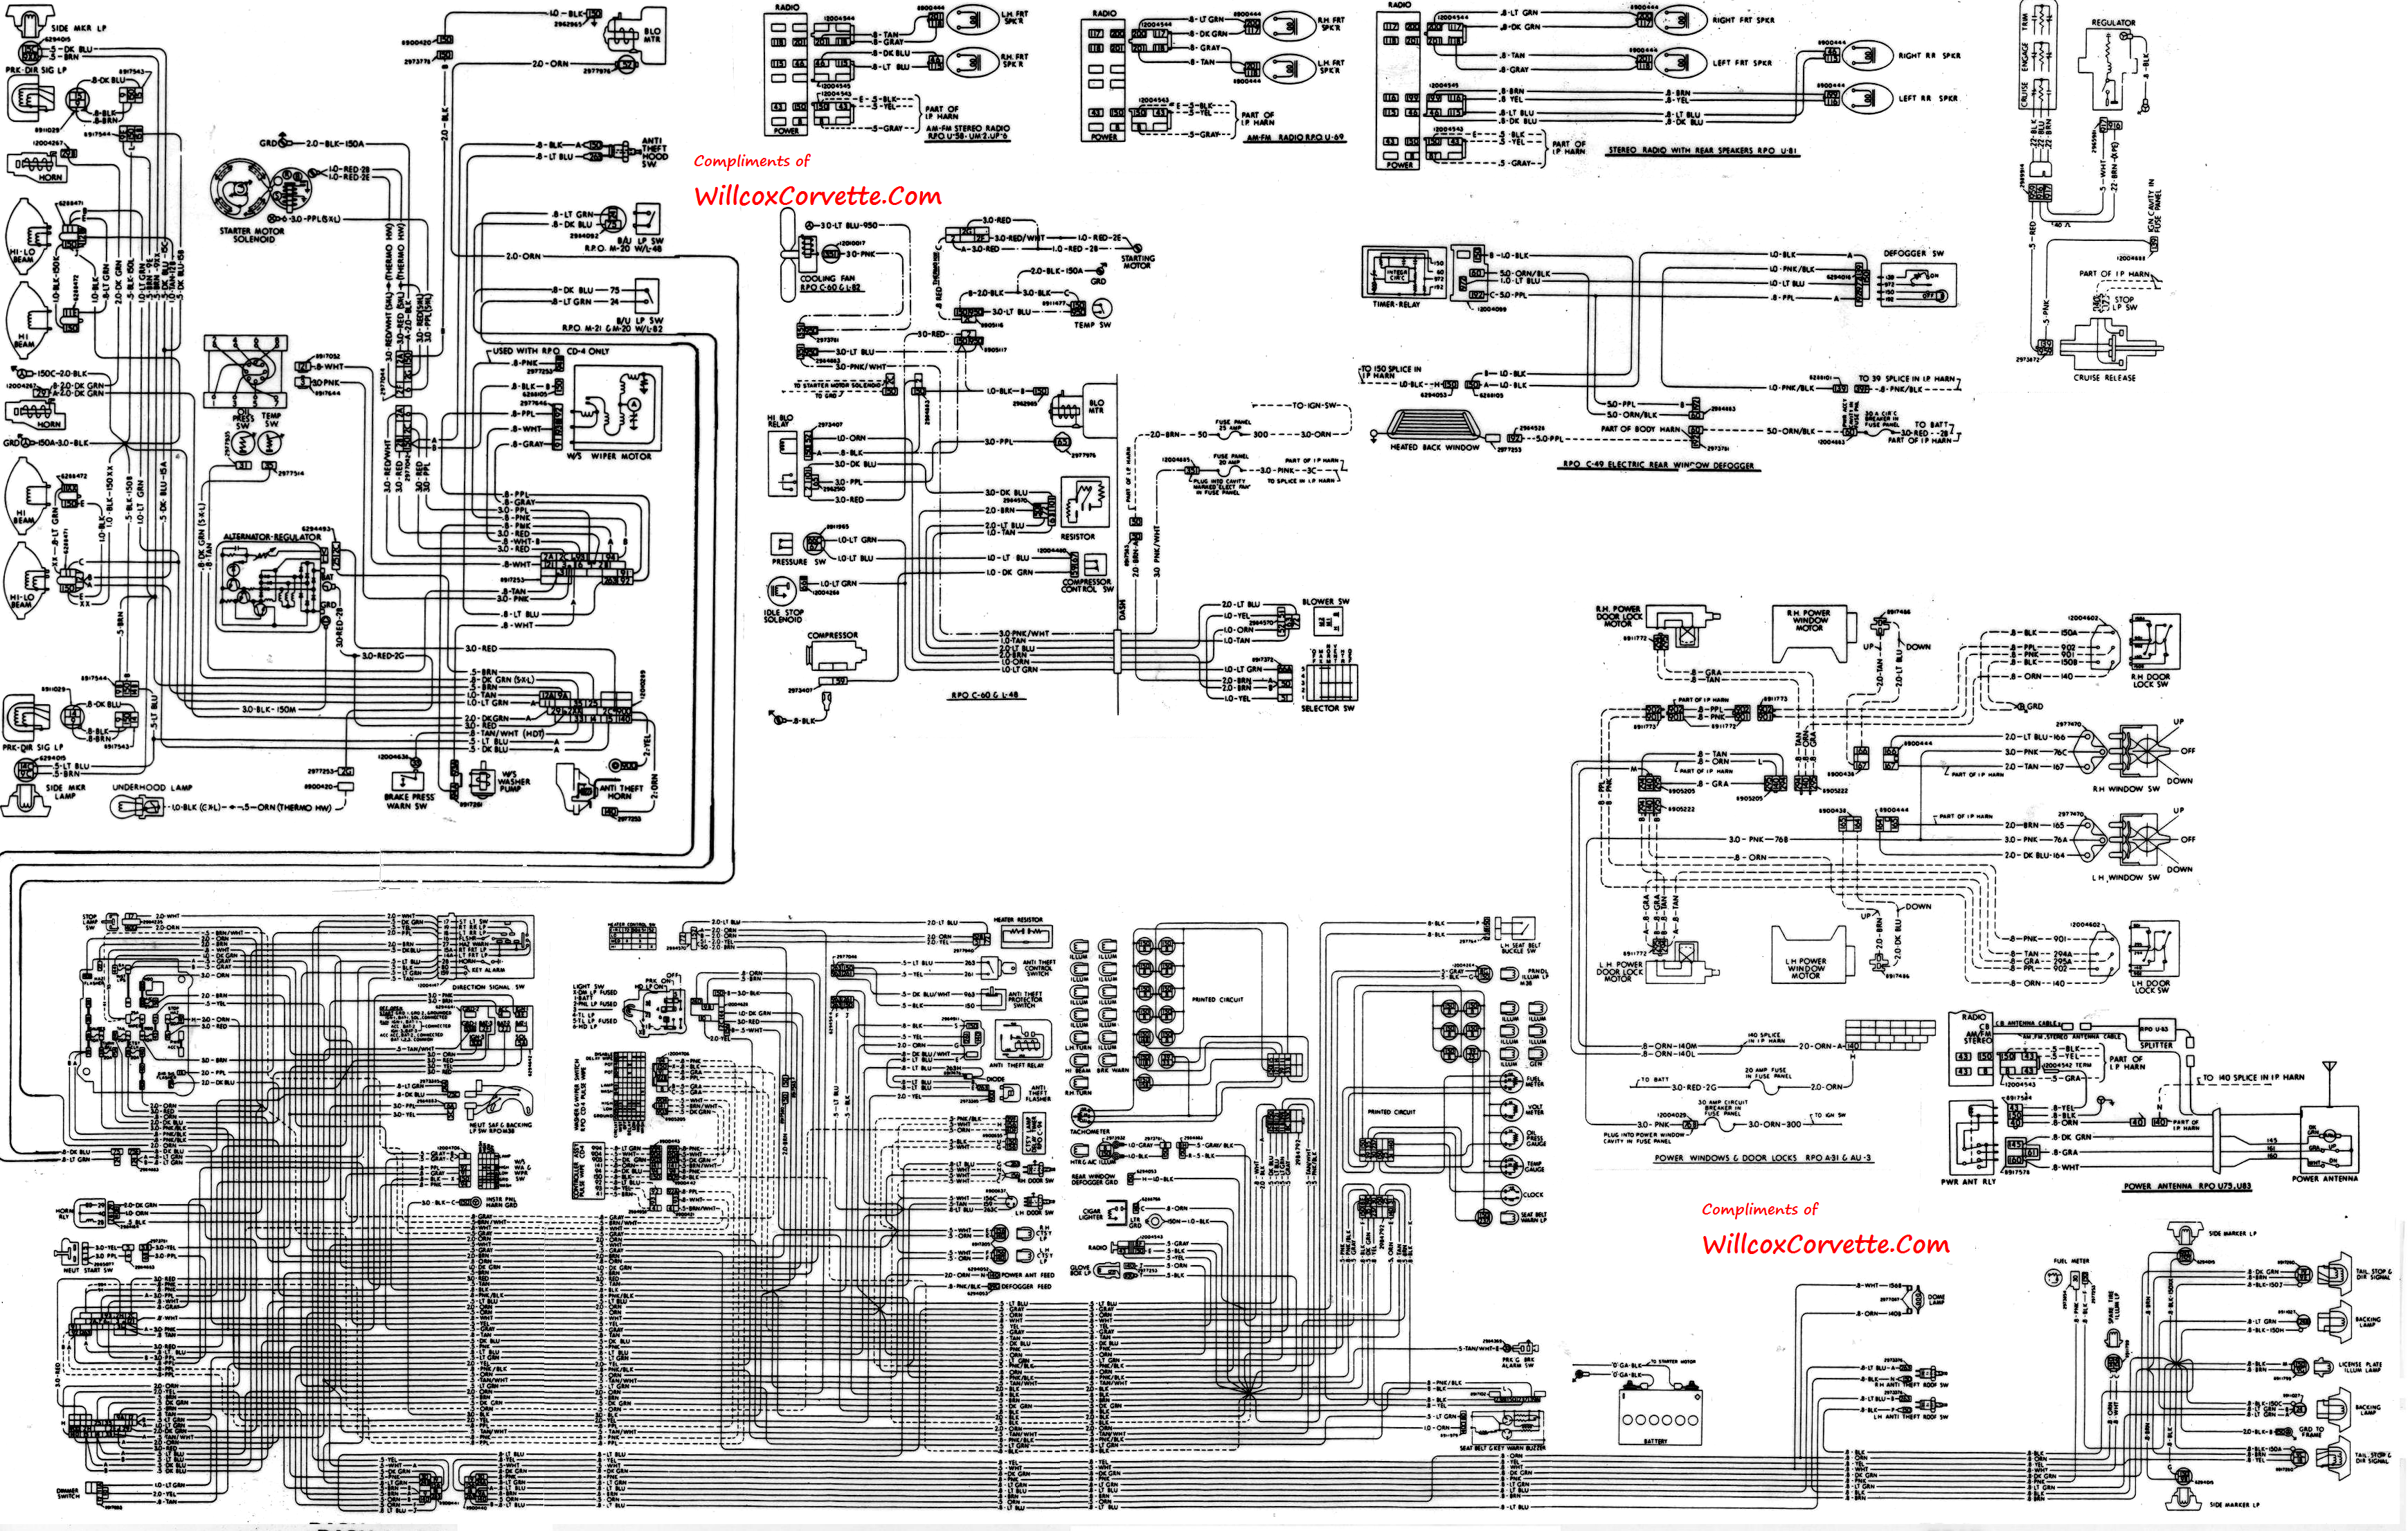 1979 Corvette Wiring Schematic - Wiring Diagram Online on ibanez axstar, ibanez 7 string, ibanez 8 string, ibanez gax, ibanez s470 mahogany oil, ibanez rg421, ibanez gsr200, ibanez rg450dx, ibanez jbm100, ibanez 9-string, ibanez model identification, ibanez pickup wiring, ibanez s5570q, ibanez color codes, ibanez sz320, ibanez explorer, ibanez grg120bdx, ibanez v7 and v8 wiring, ibanez hsh wiring, ibanez roadcore,